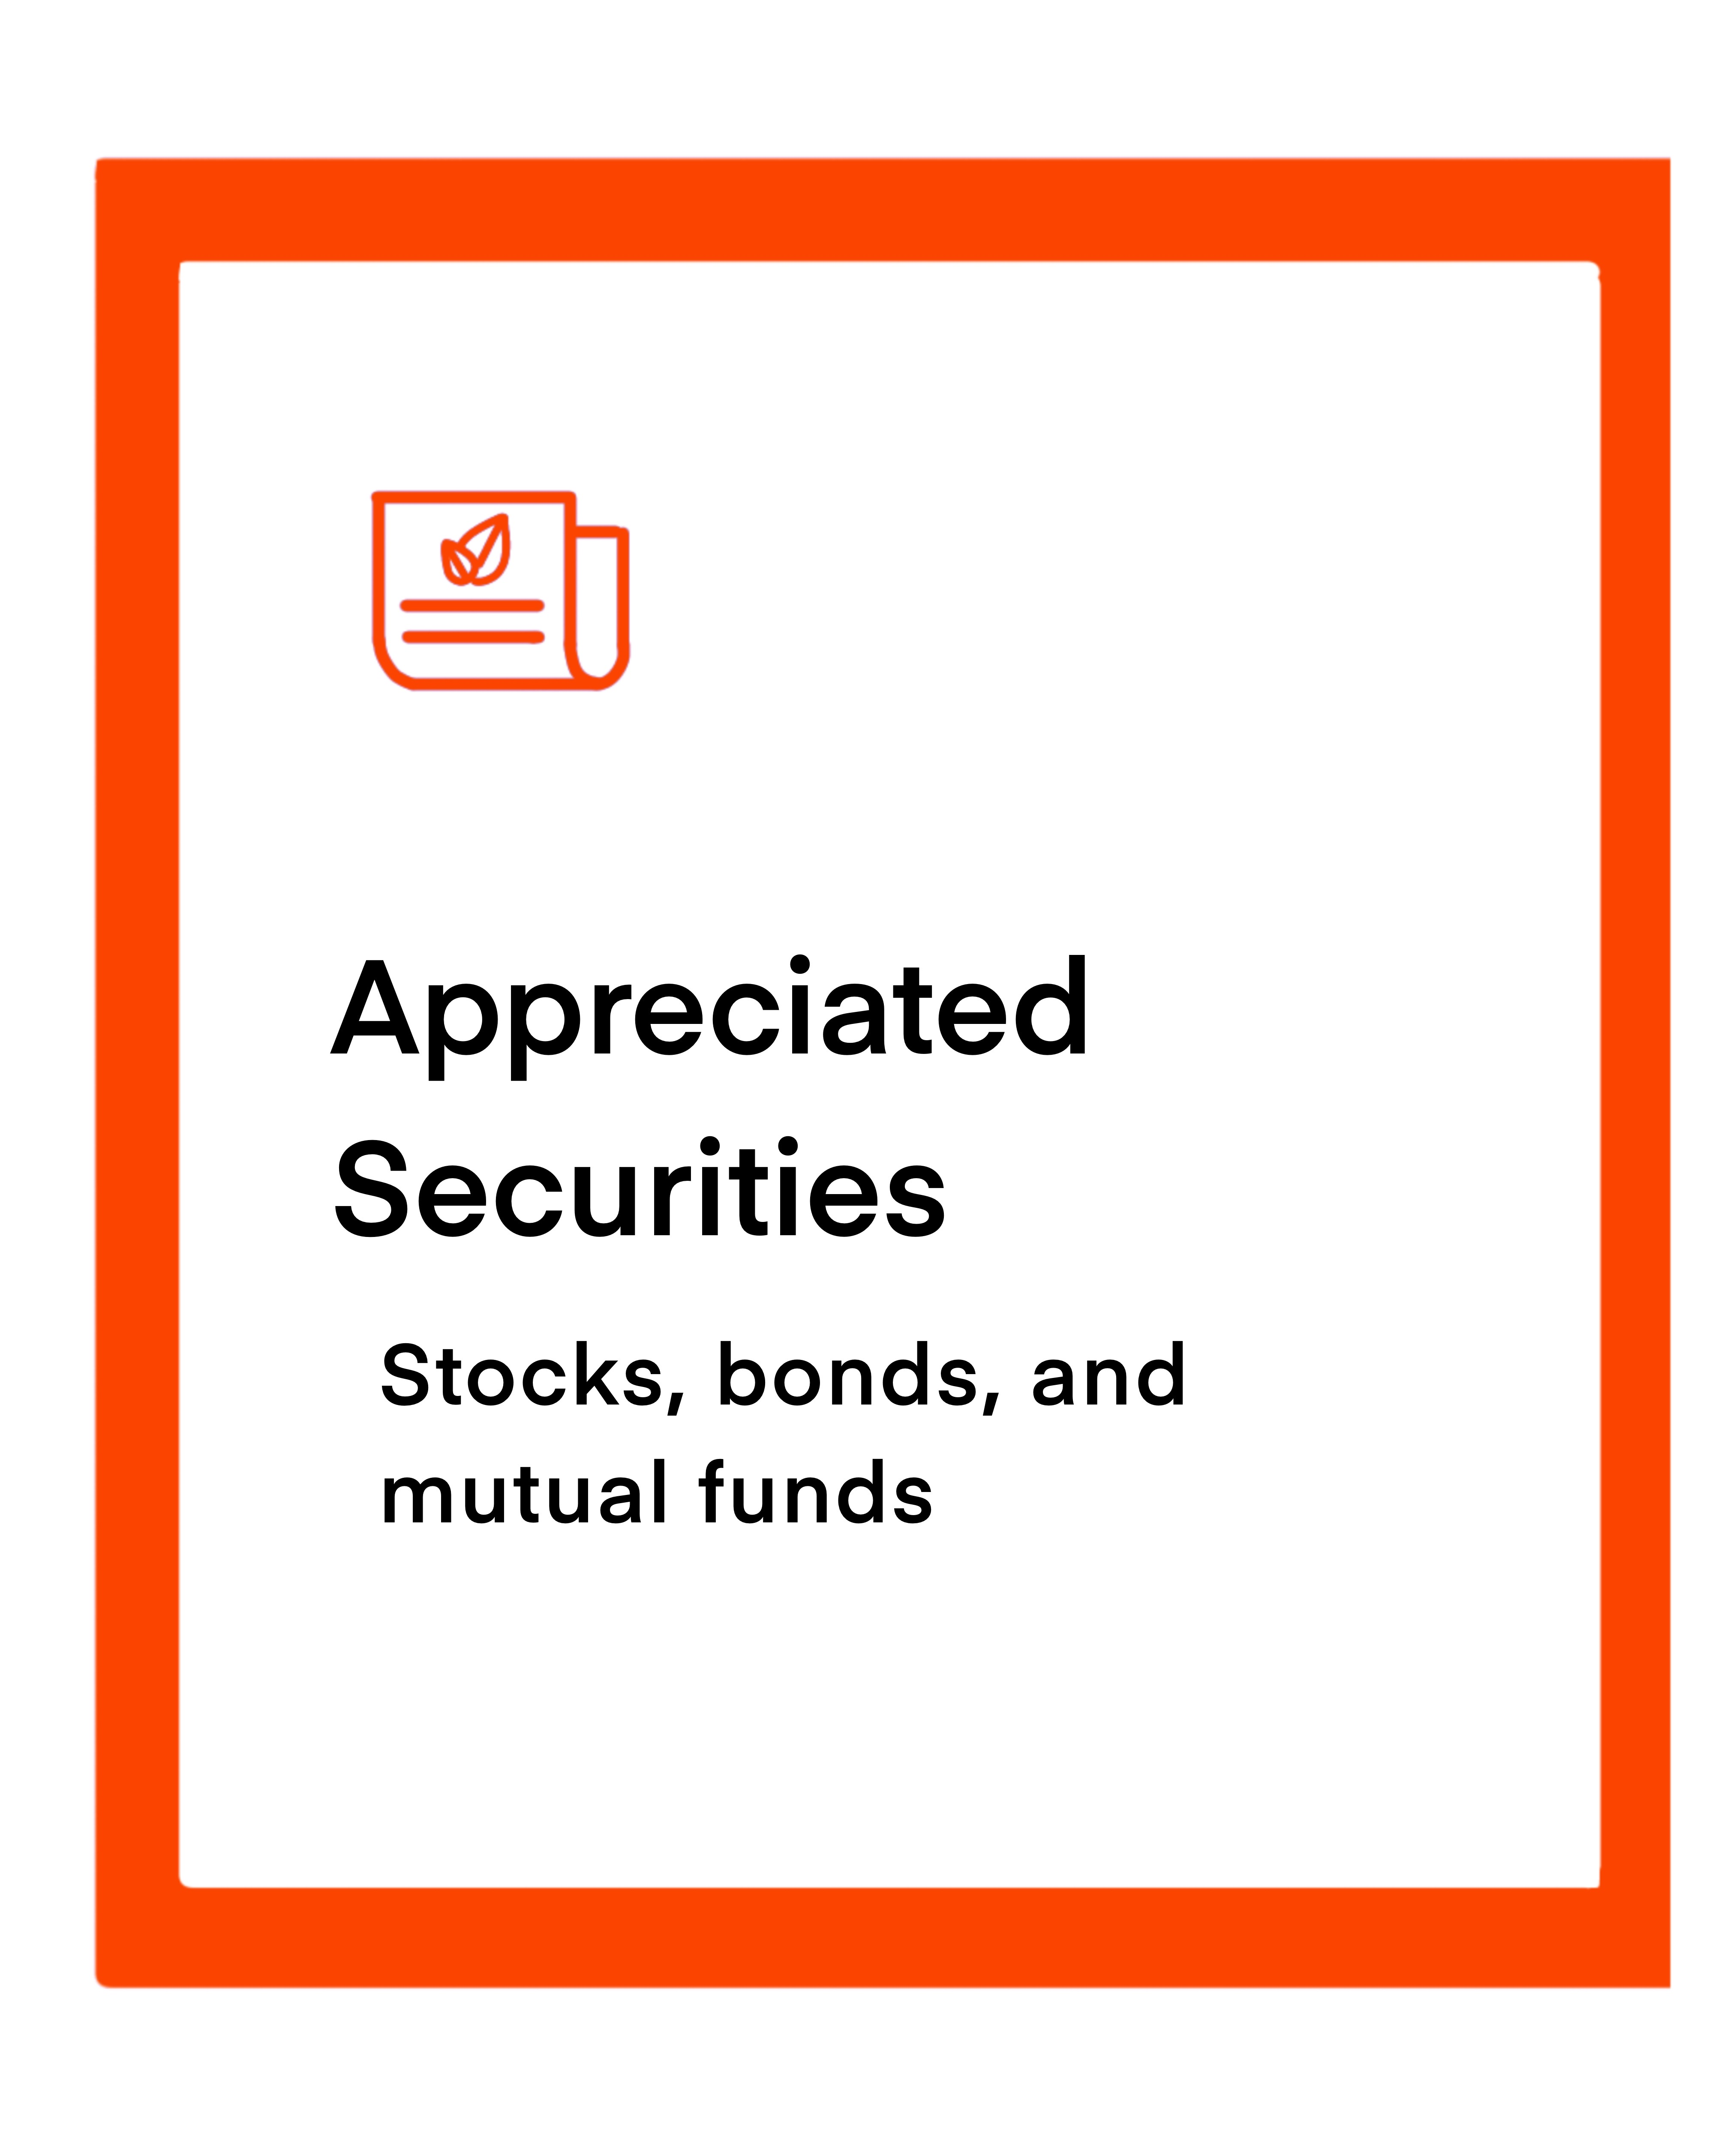 Appreciated Securities